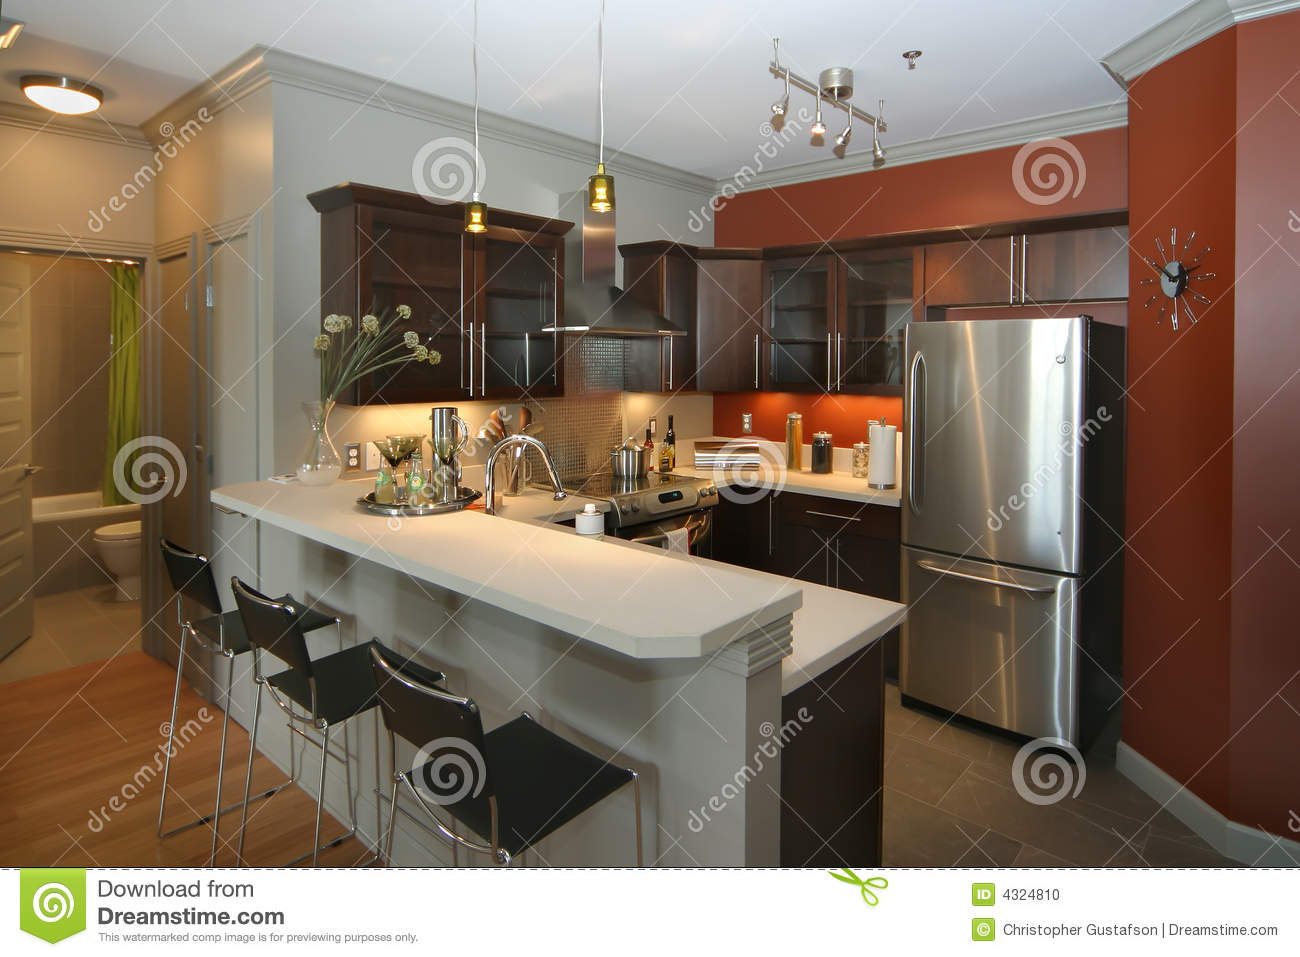 Modern kitchen with bar area stock photo image 4324810 - Bar area in kitchen ...